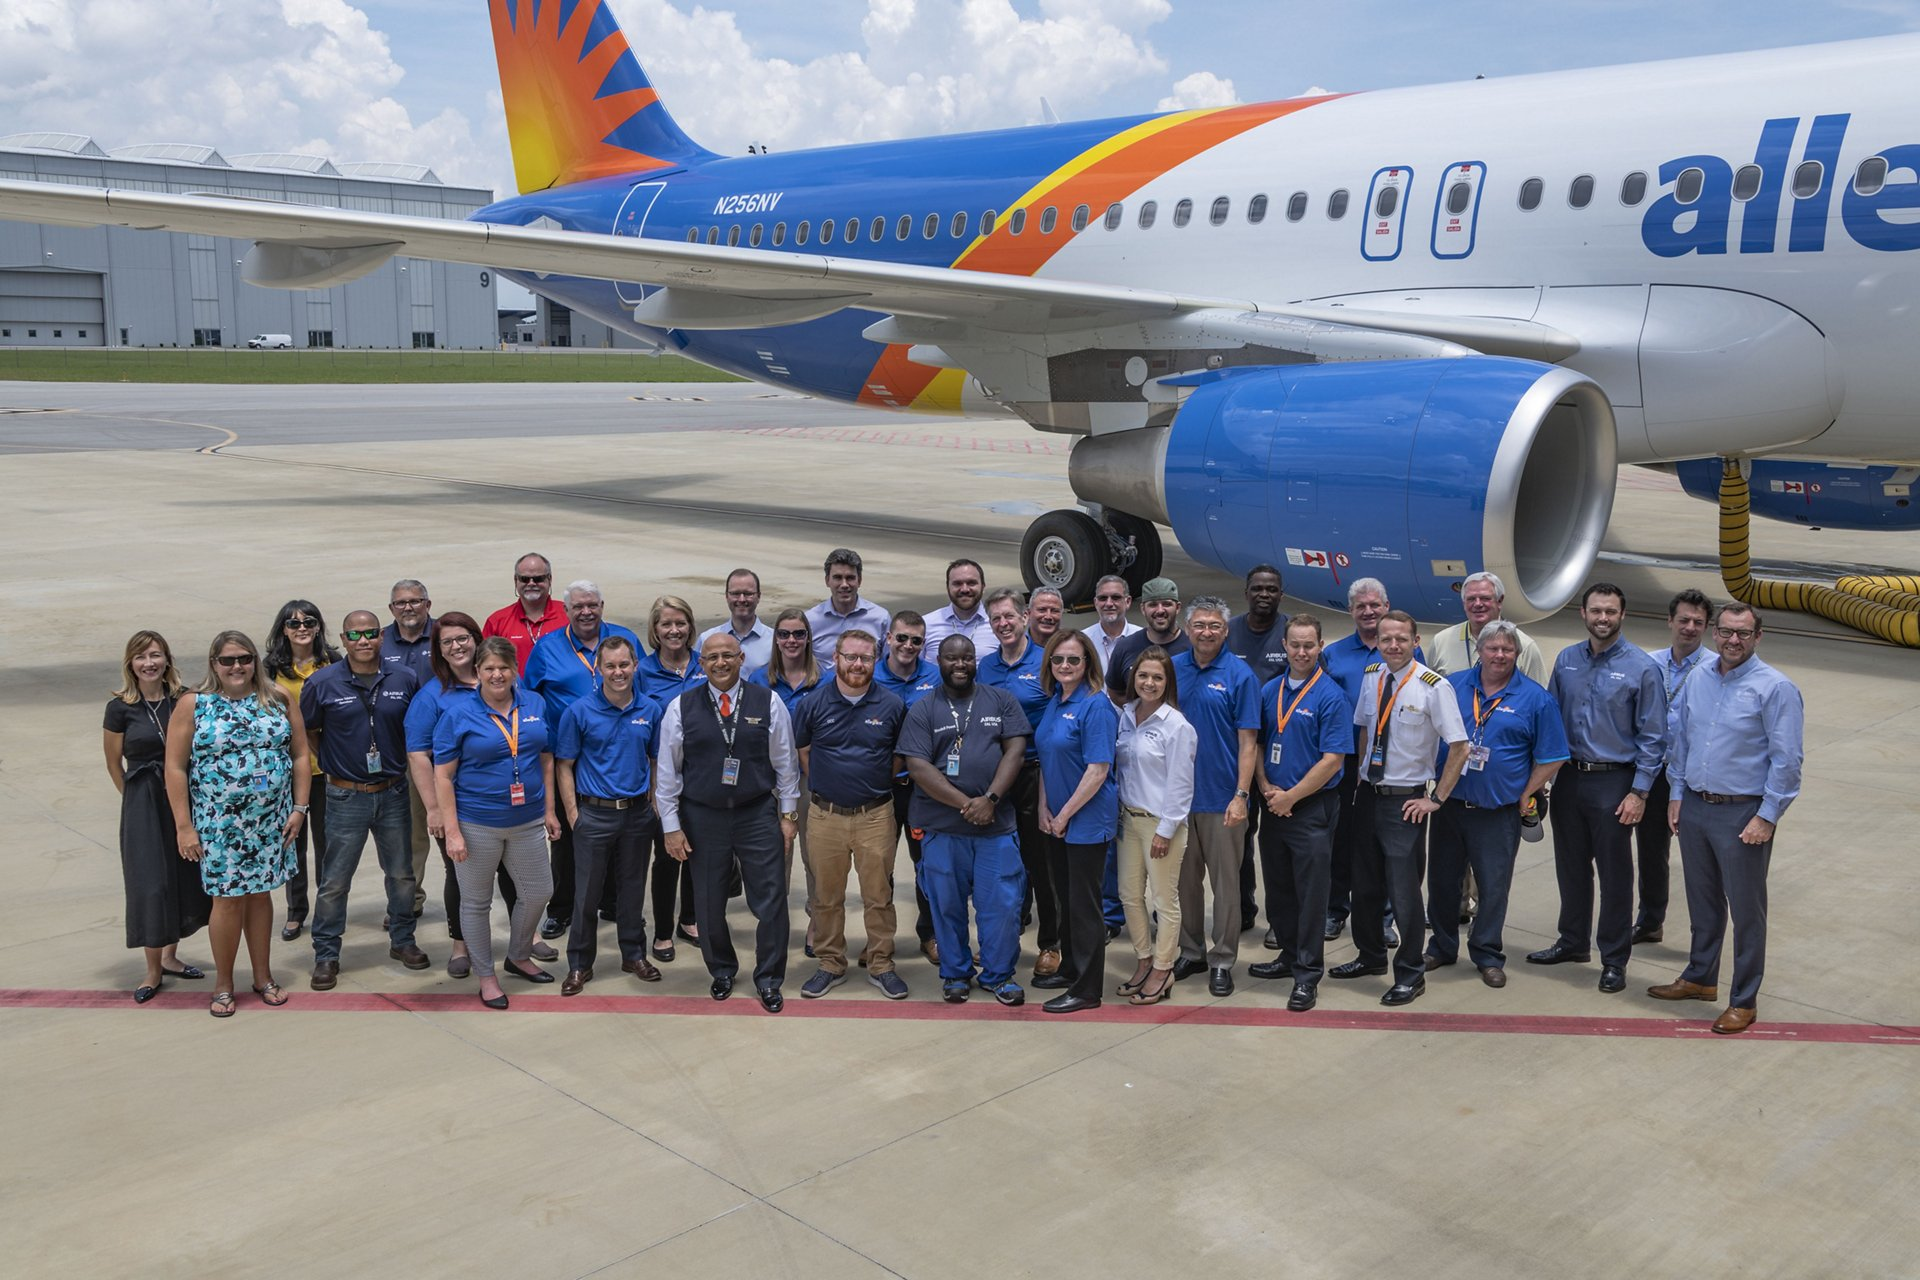 Delivery of Allegiant Air's first U.S.-built ACJ320 jetliner